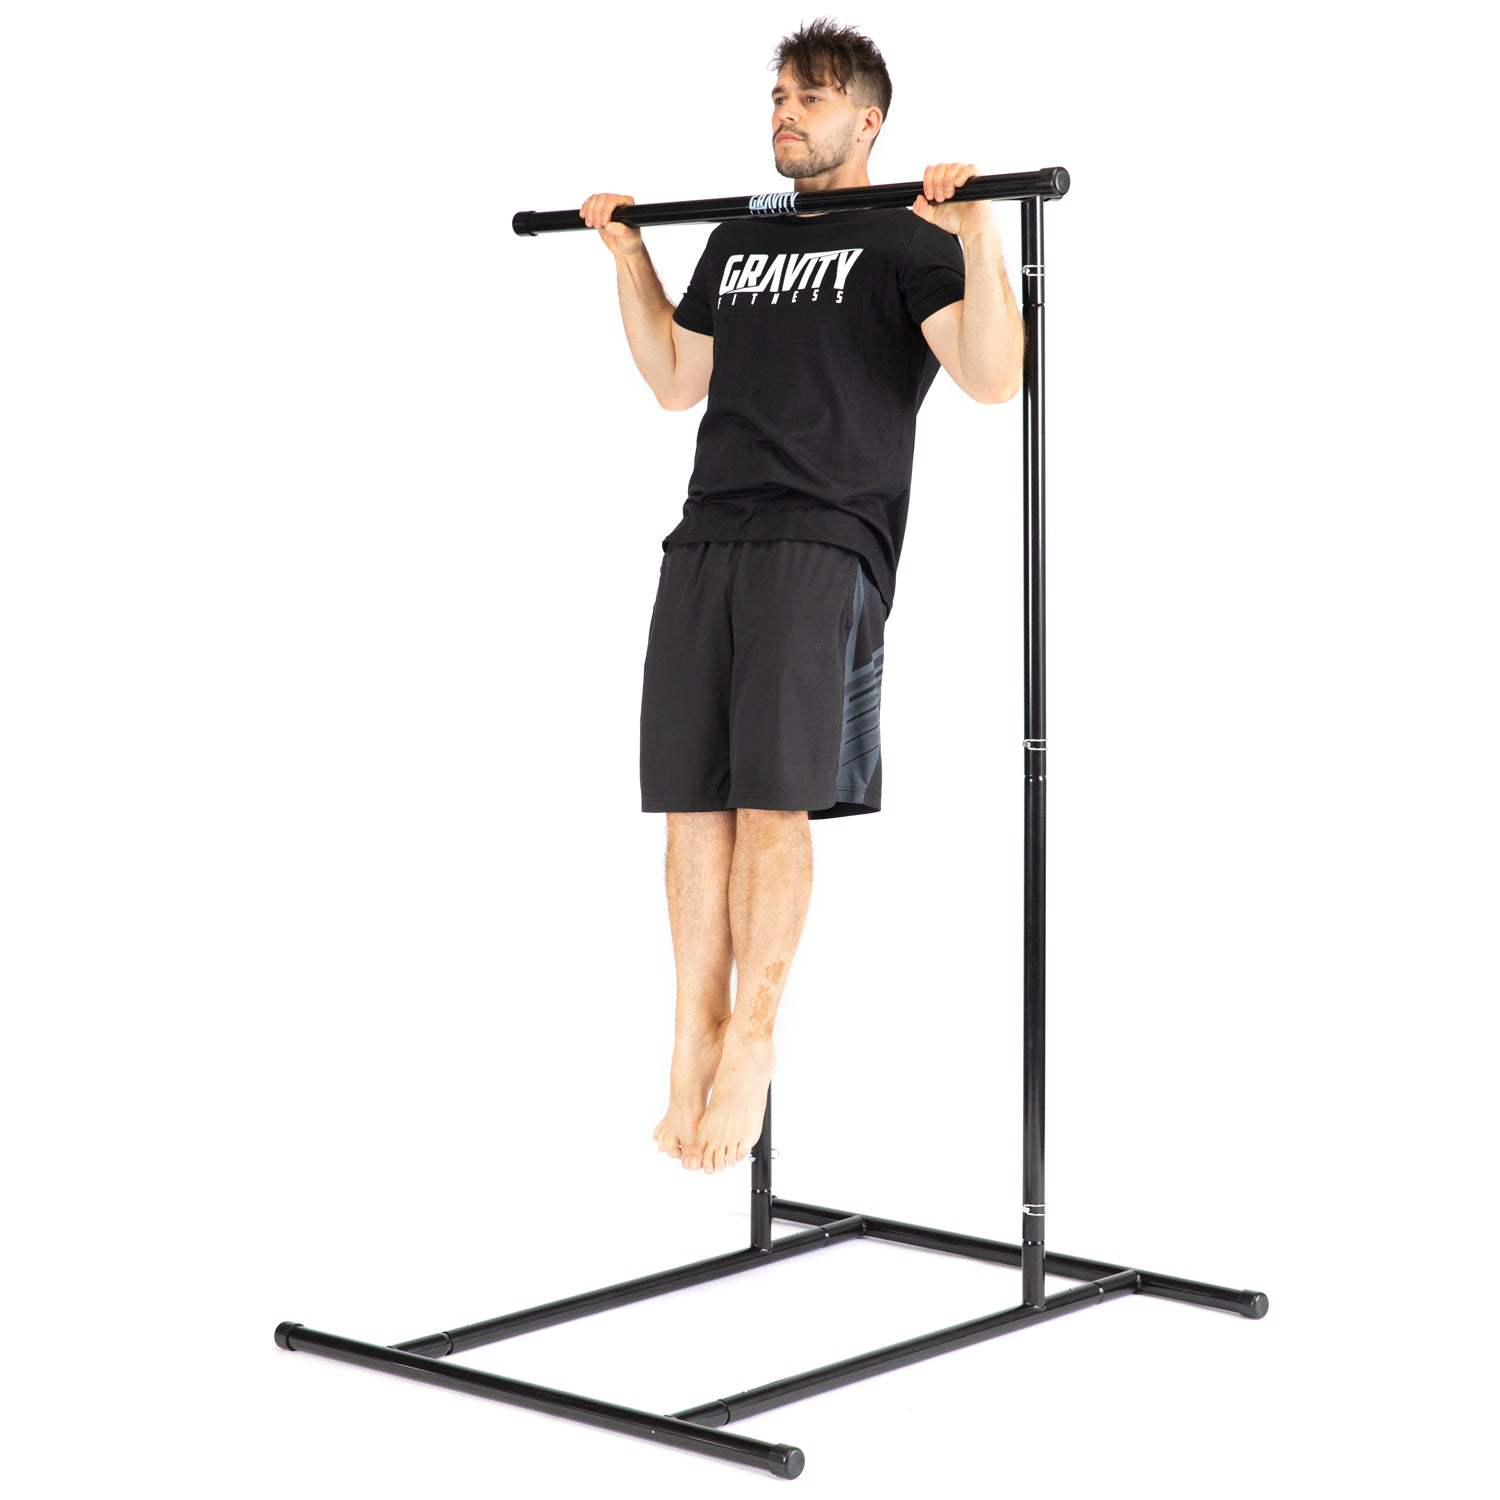 Exercise Pull Up Mate Gym Equipment. Freestanding Pull Up Bar